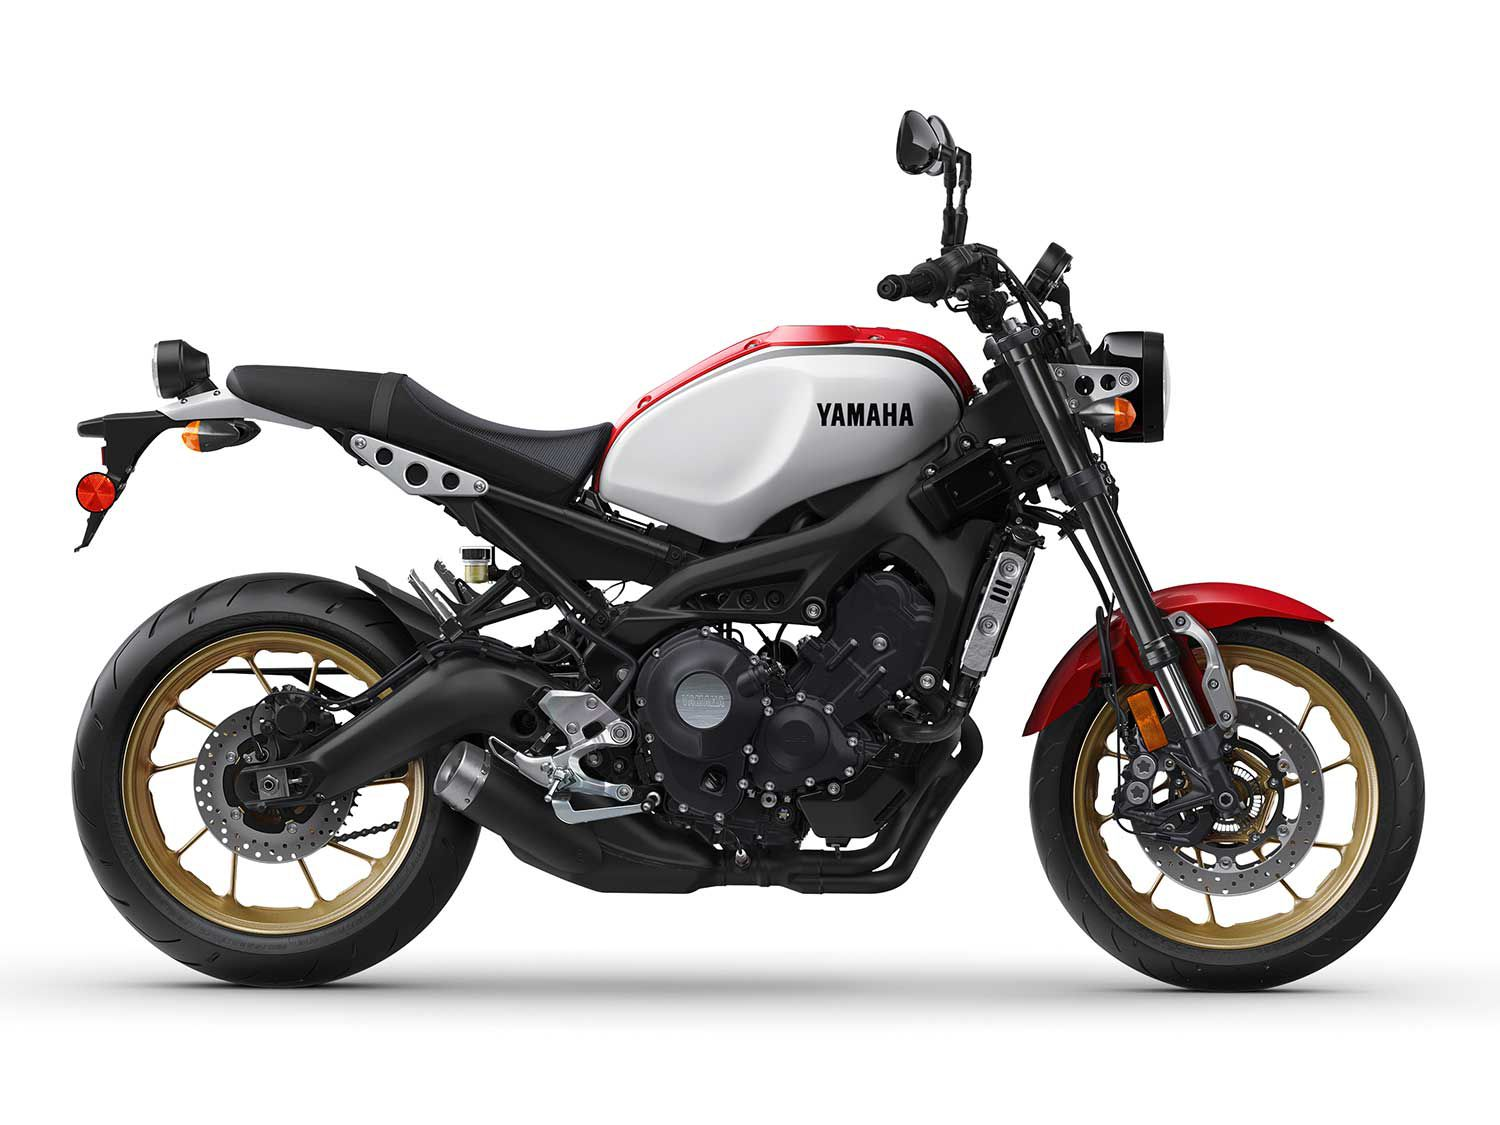 That Radical White/Rapid Red paint scheme is new for 2020 and graces both the XSR900 and XSR700 models.